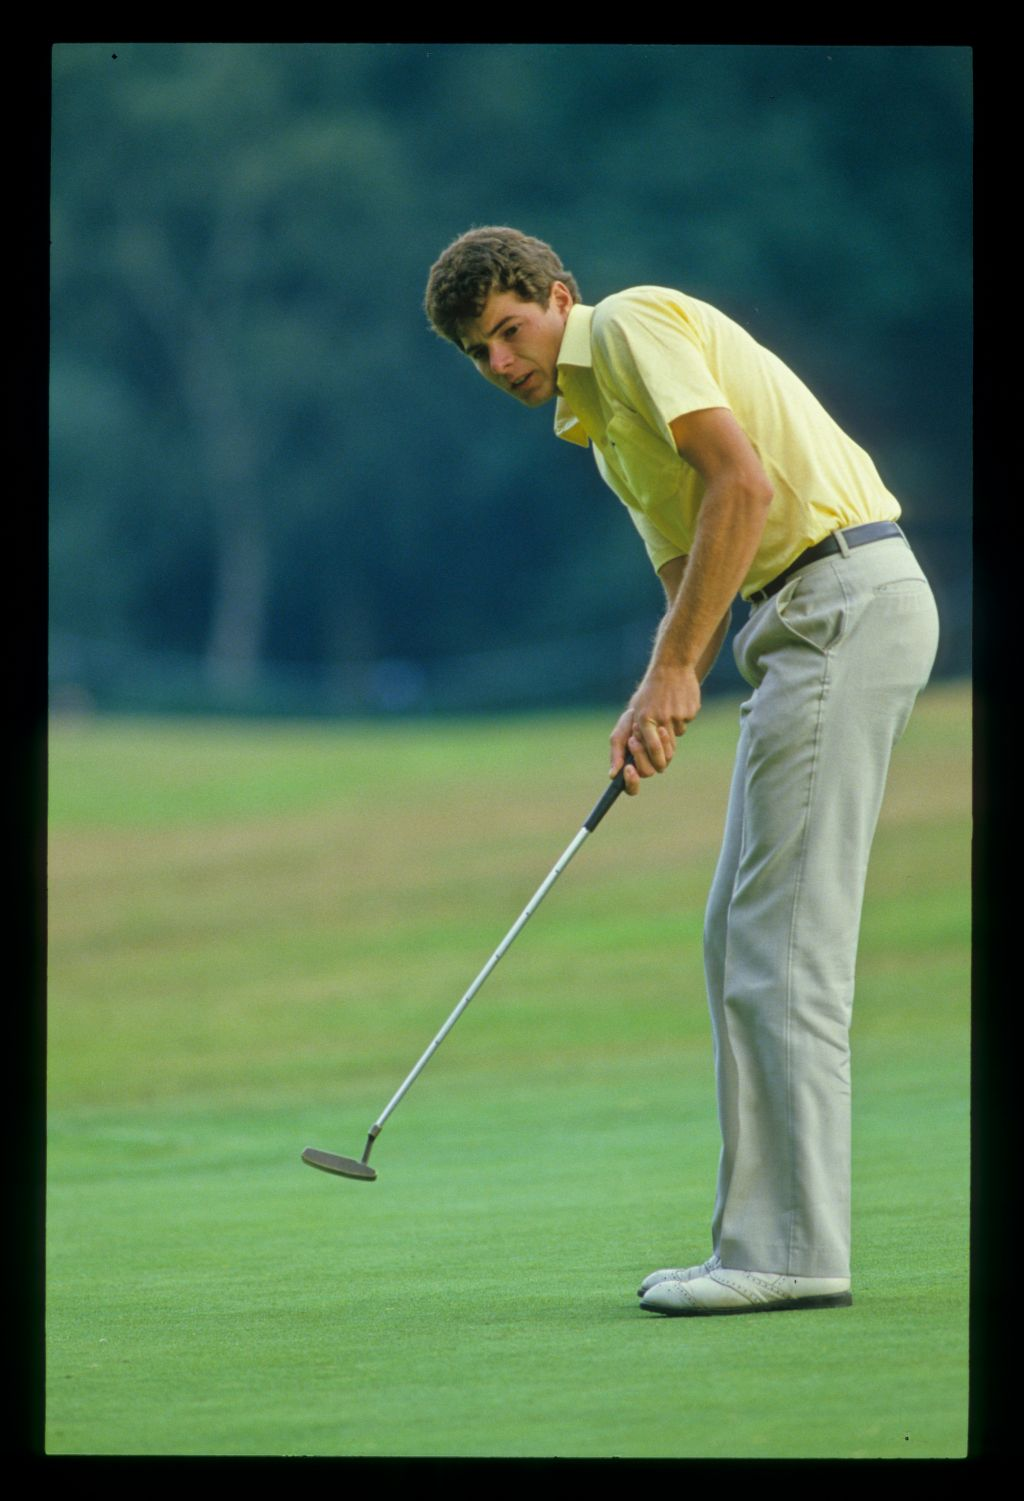 Philip Parkin putting during the 1986 Australian Masters